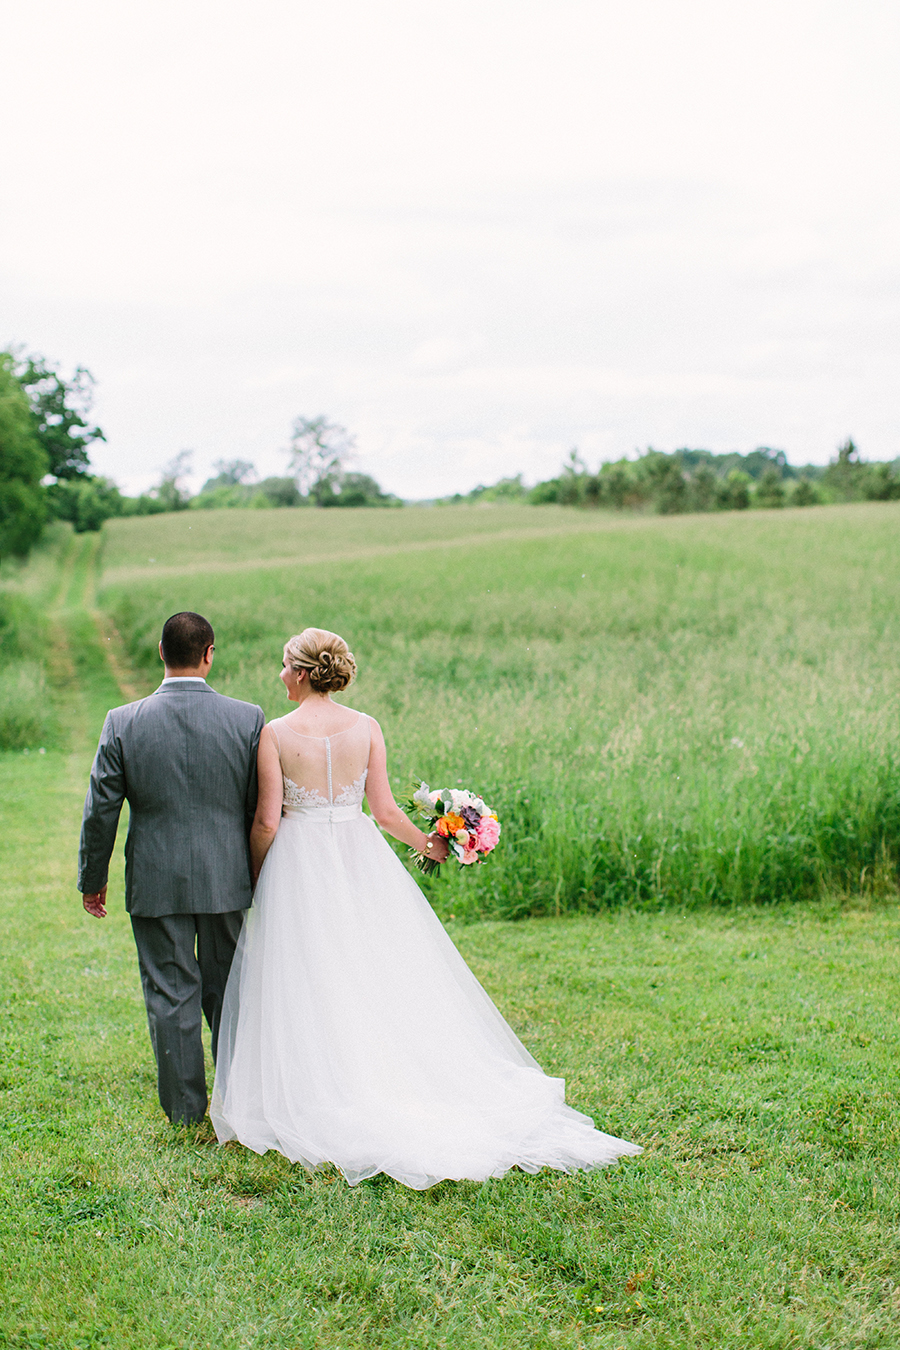 lauren&brandon-thecompasspointshere_09.jpg